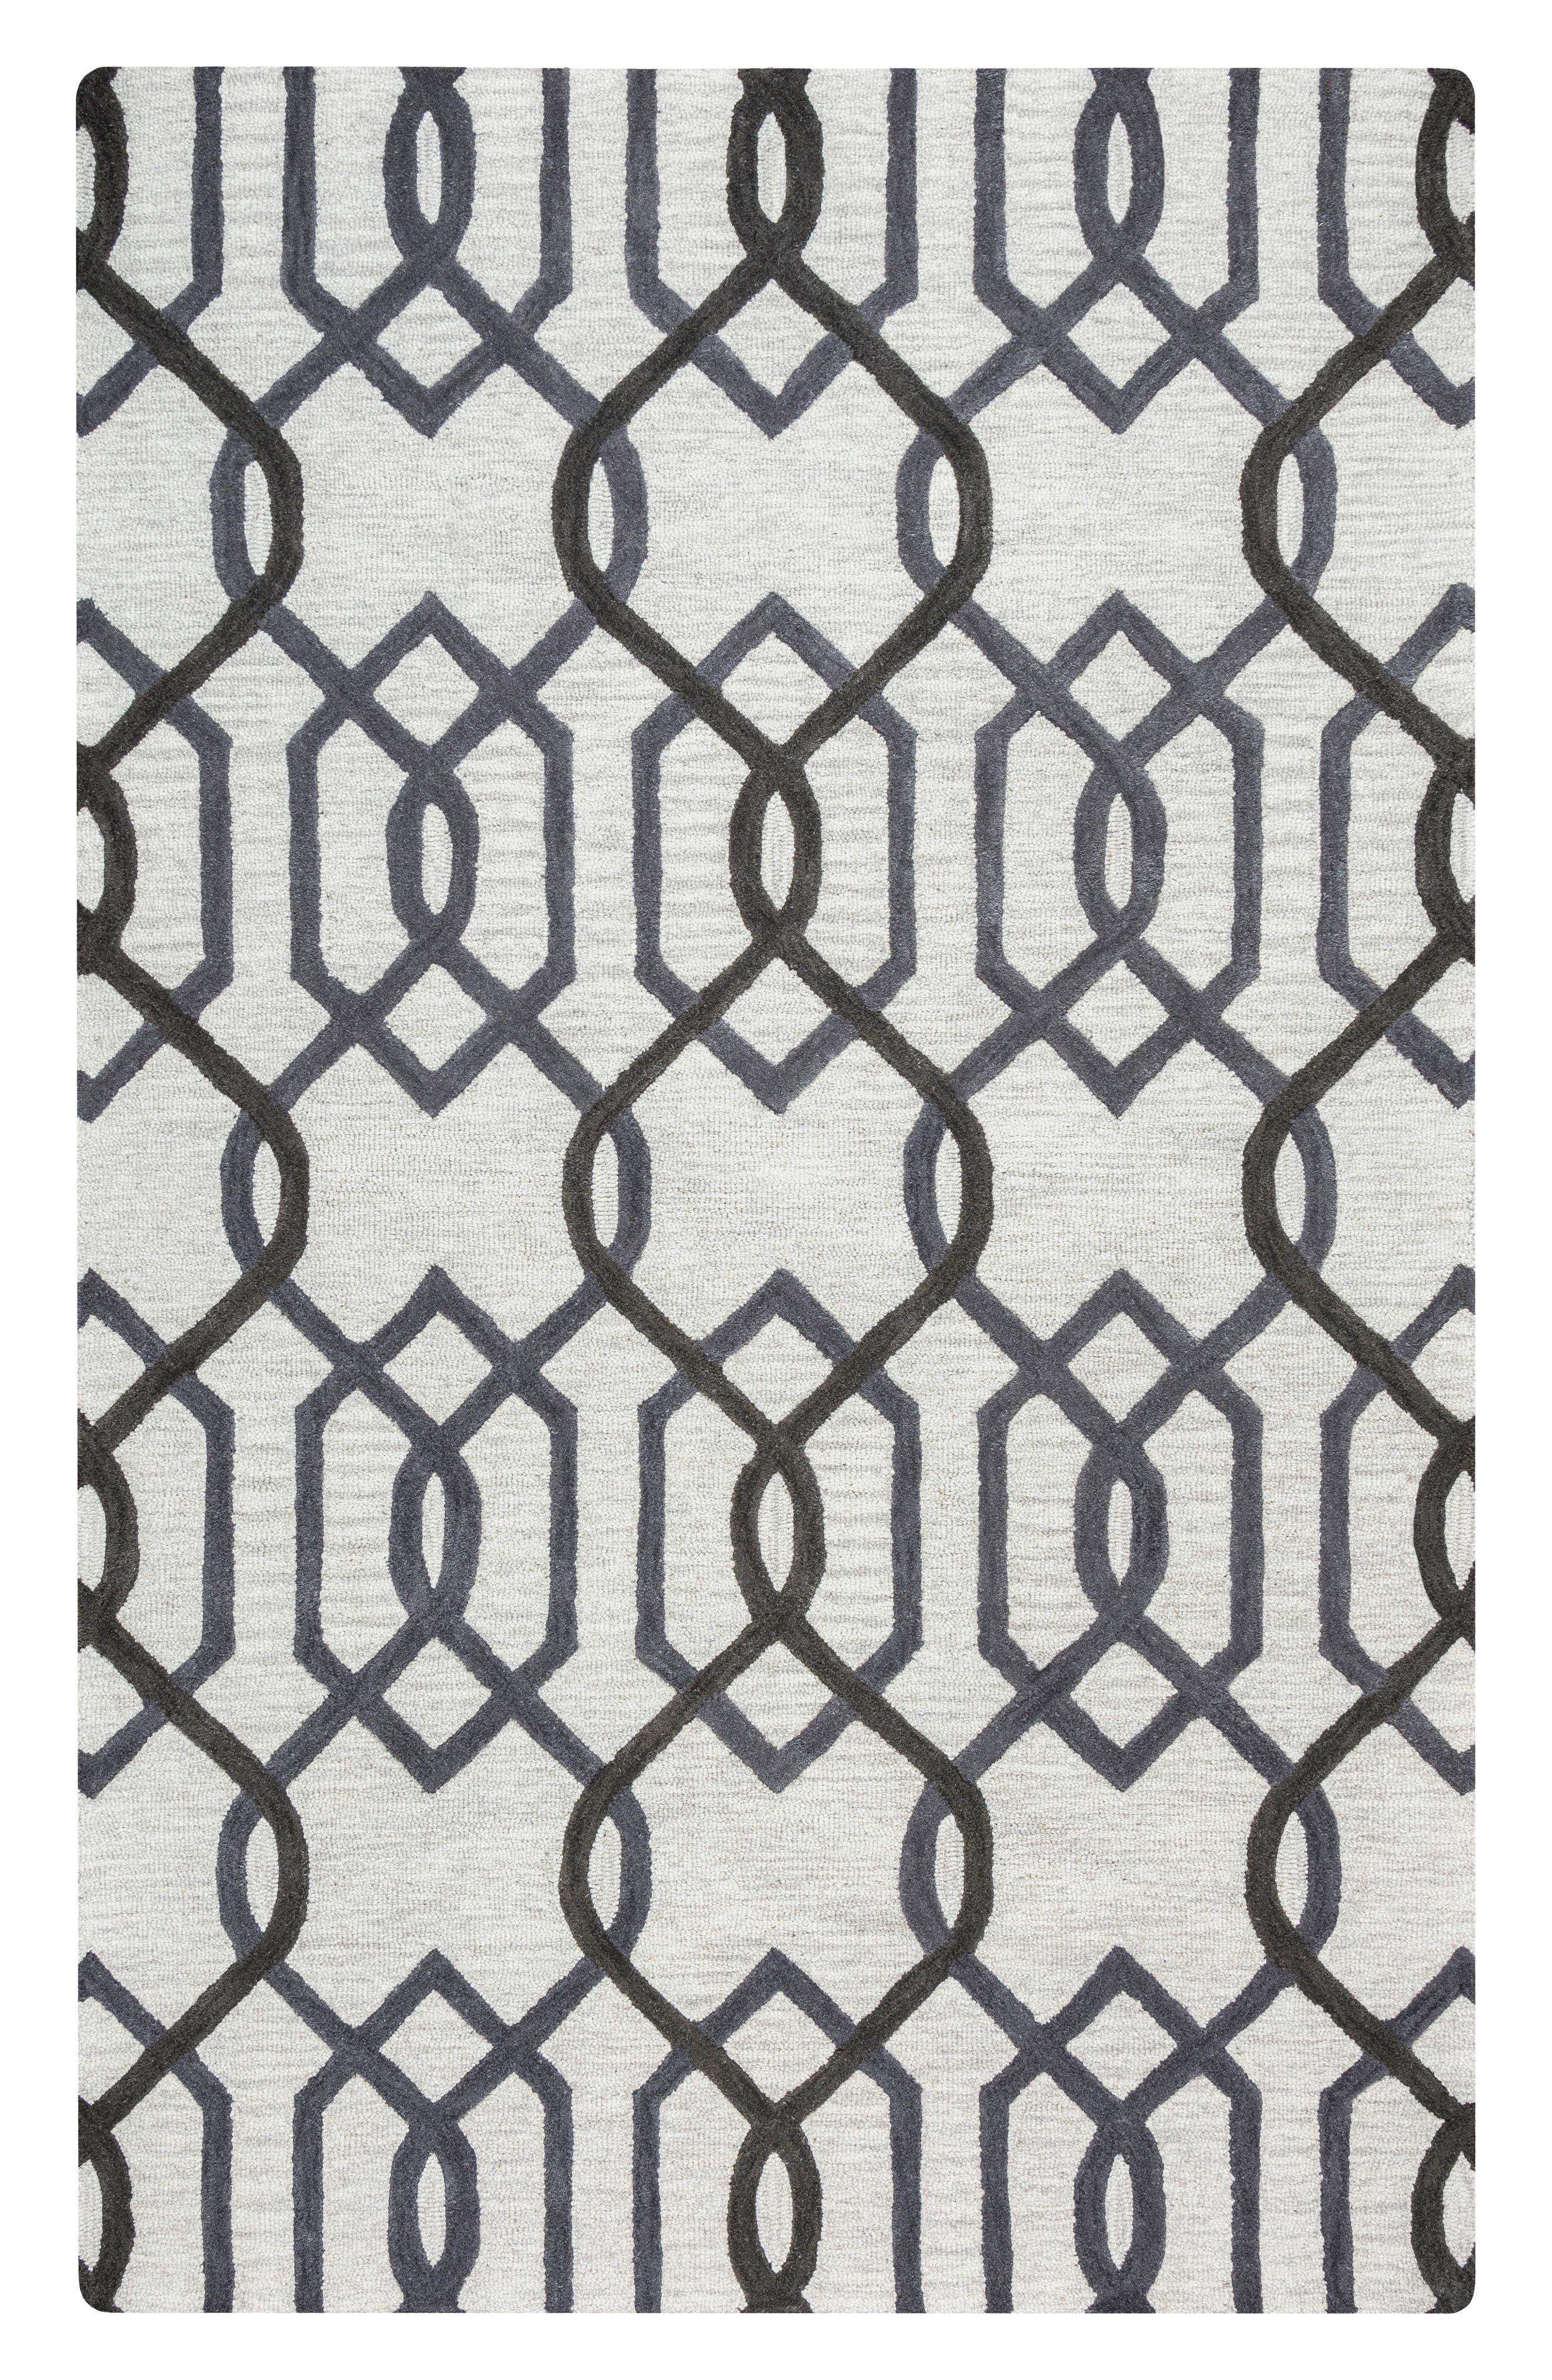 Alternate Image 1 Selected - Rizzy Home 'Caterine Lines' Hand Tufted Wool Area Rug